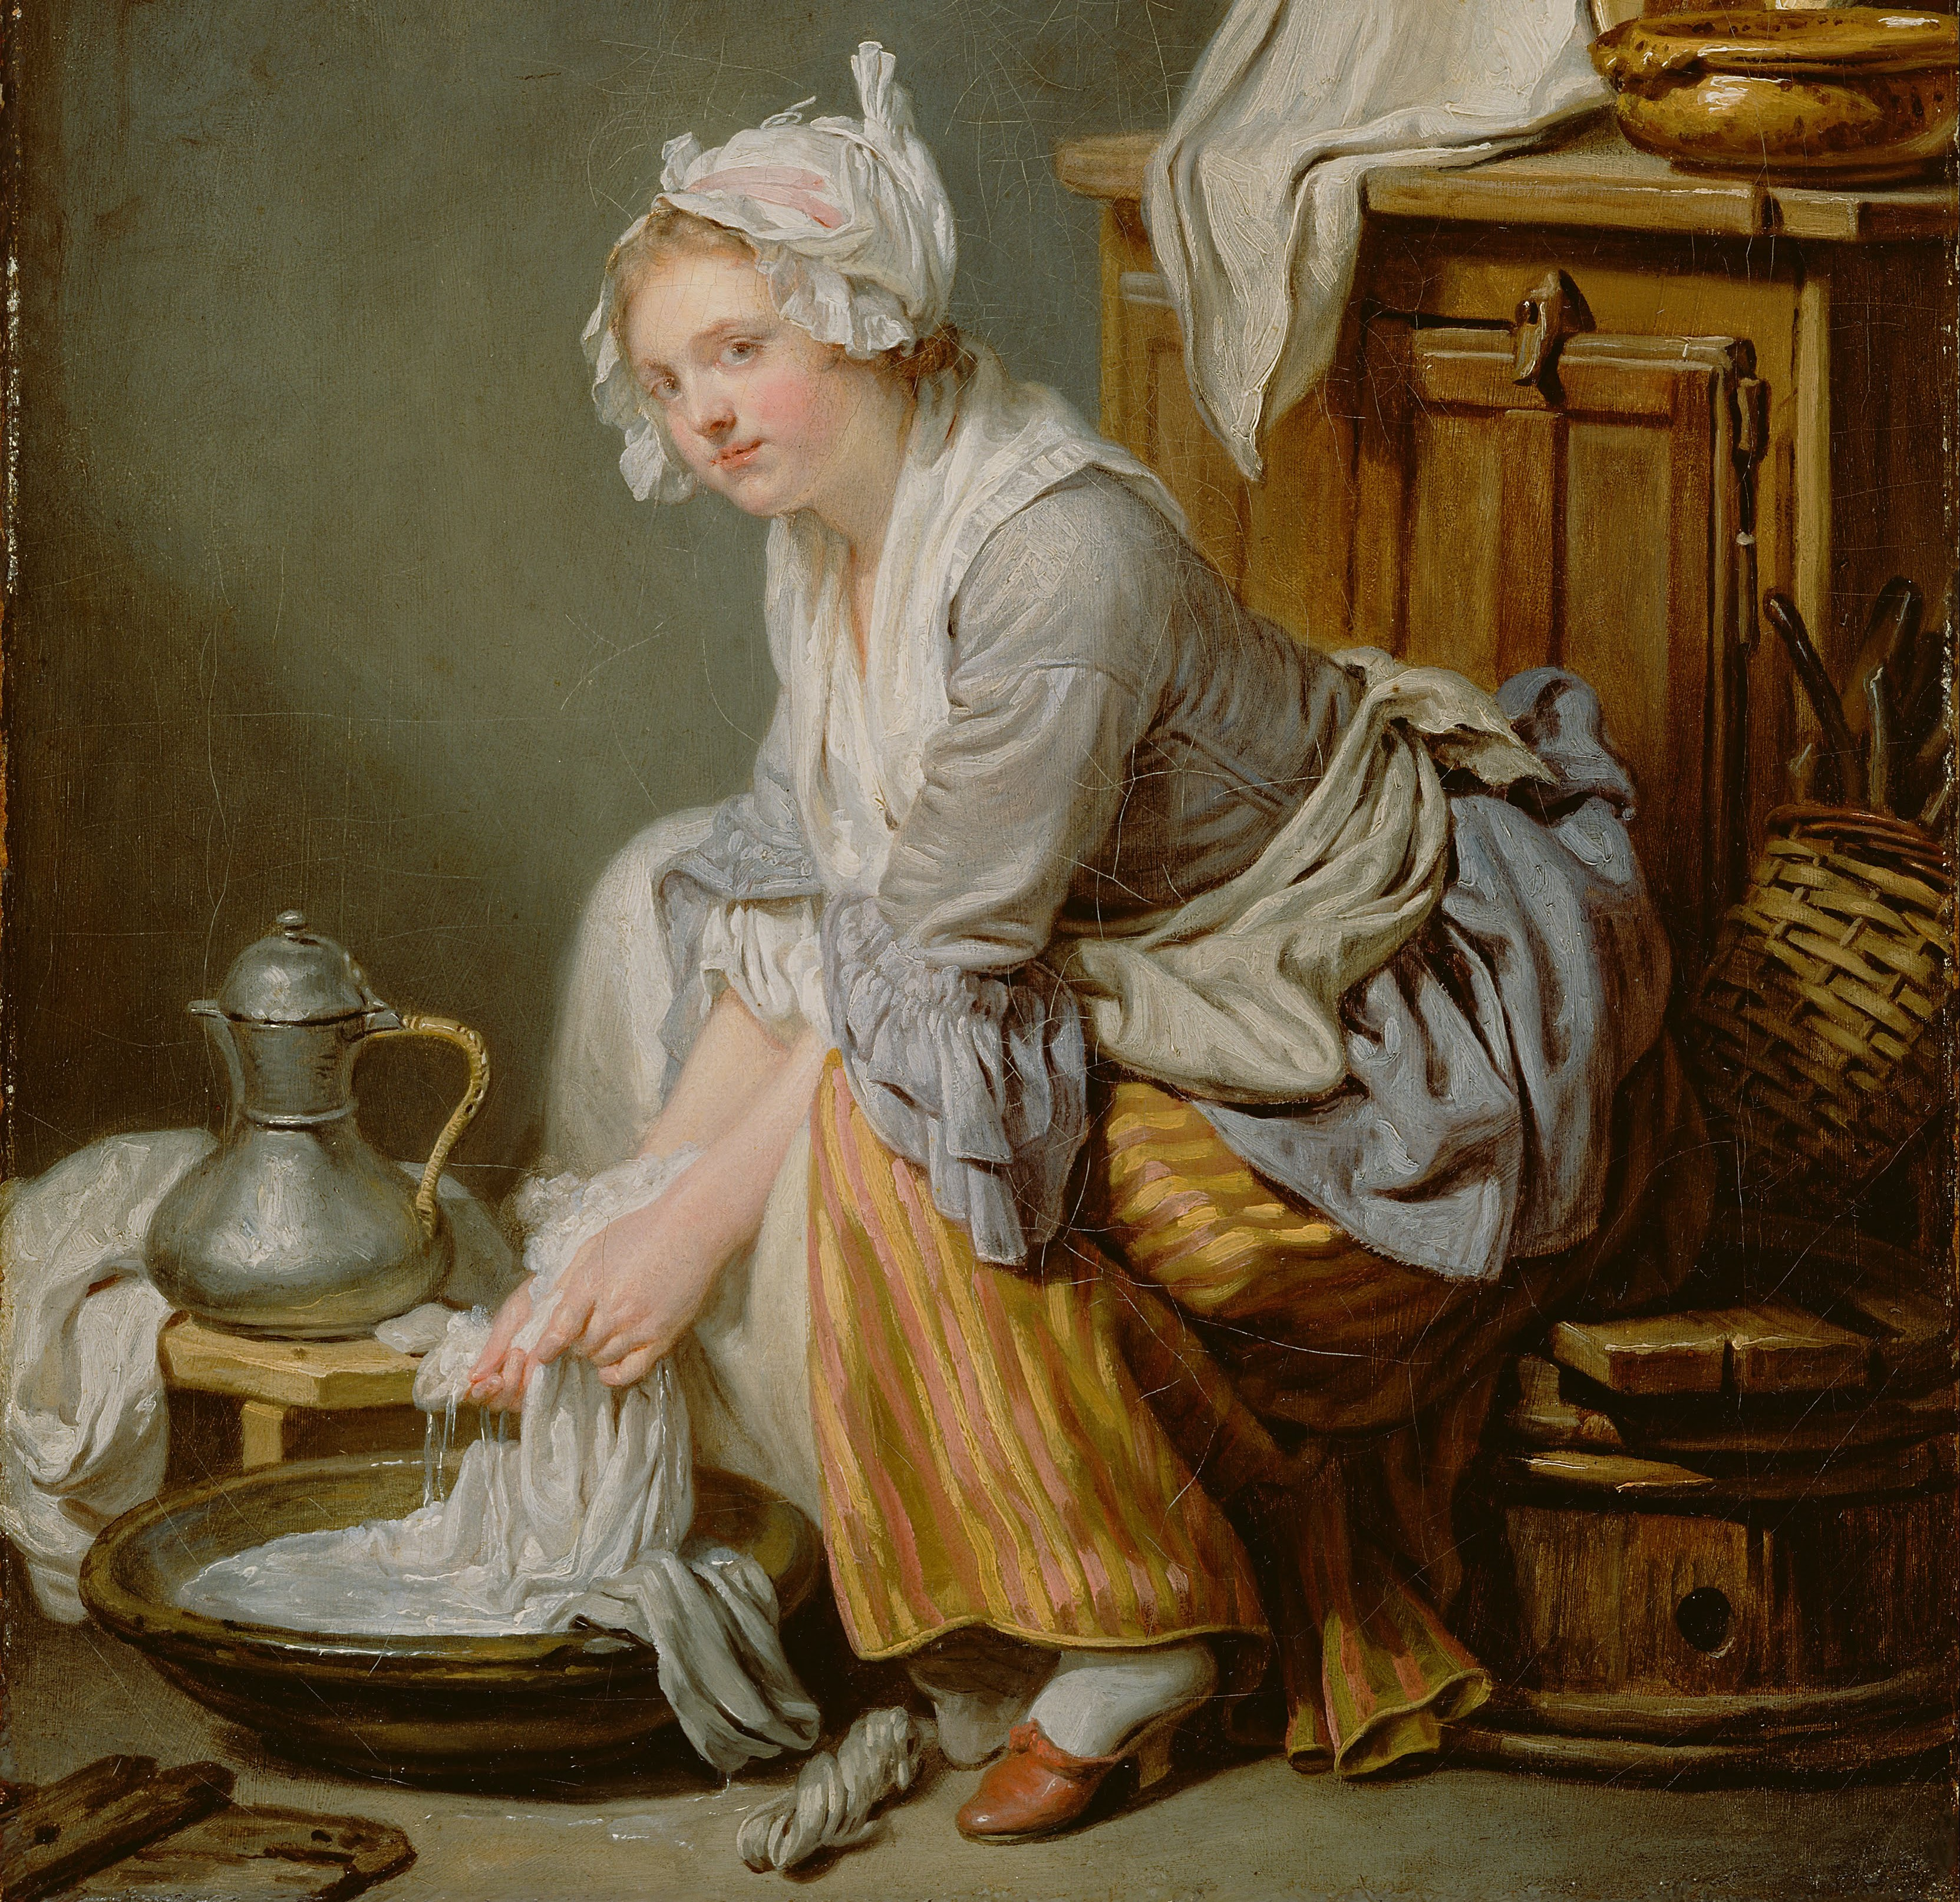 jean-baptiste_greuze_french_the_laundress_la_blanchisseuse_google_art_project_1.jpg